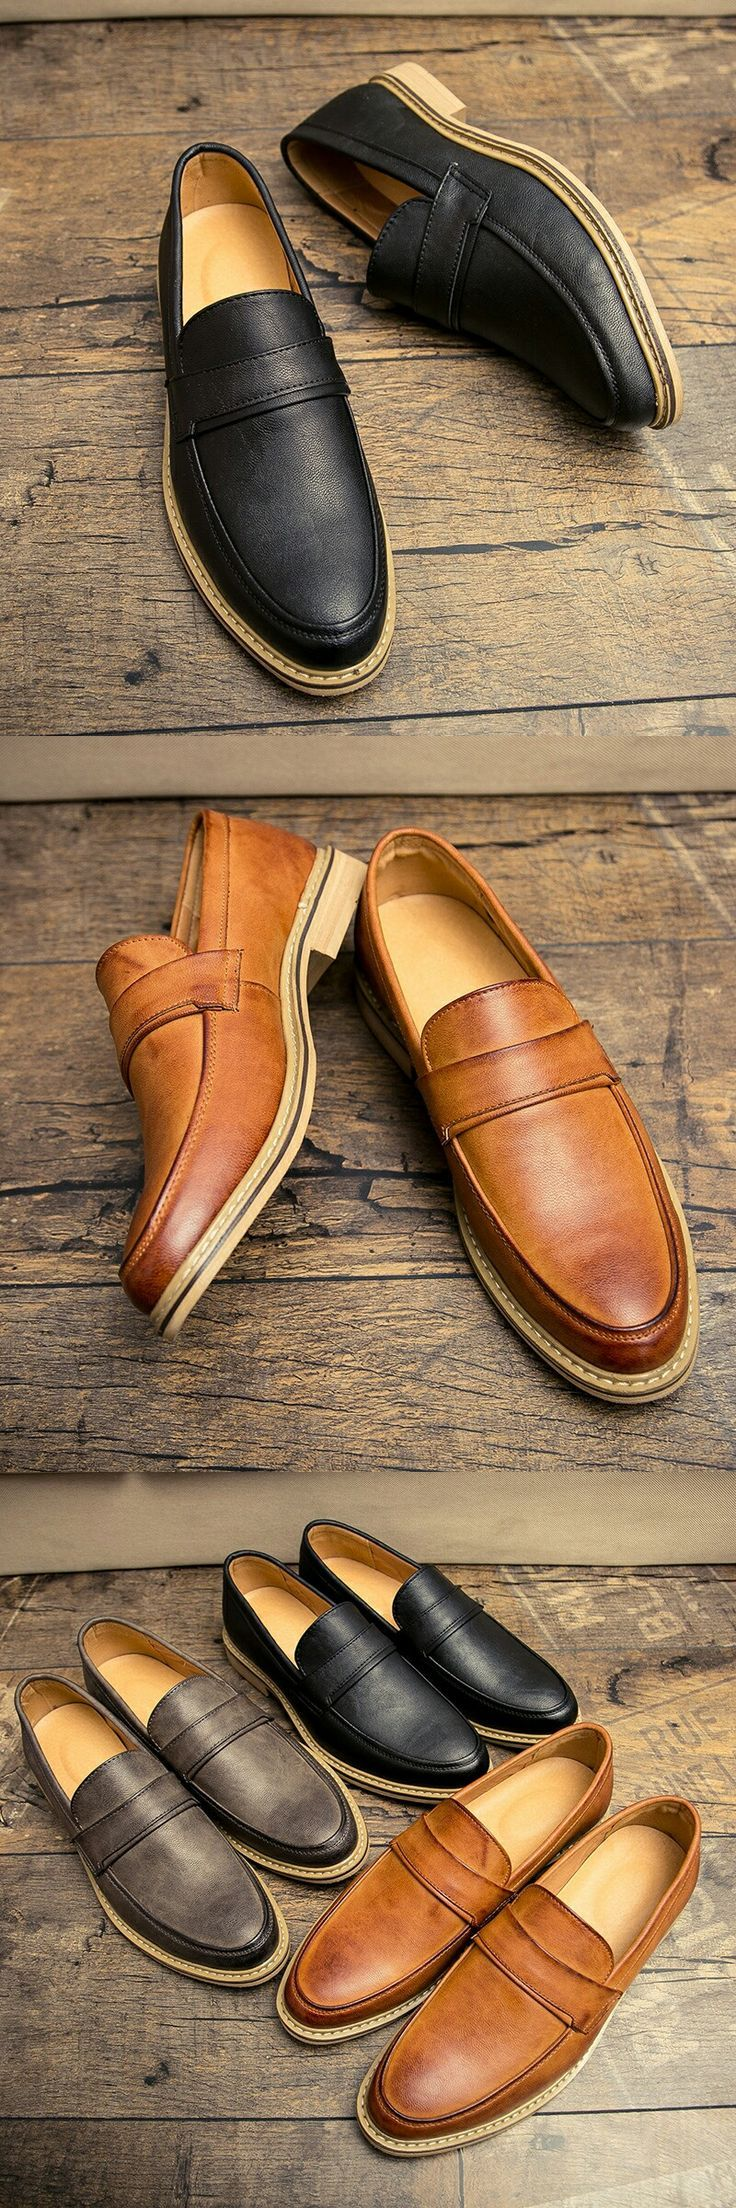 New Arrival Vintage Leather Men Dress Shoes Smart Retro Formal Brogue Pointed Toe Carved Penny Loafer Oxfords Wedding Shoes